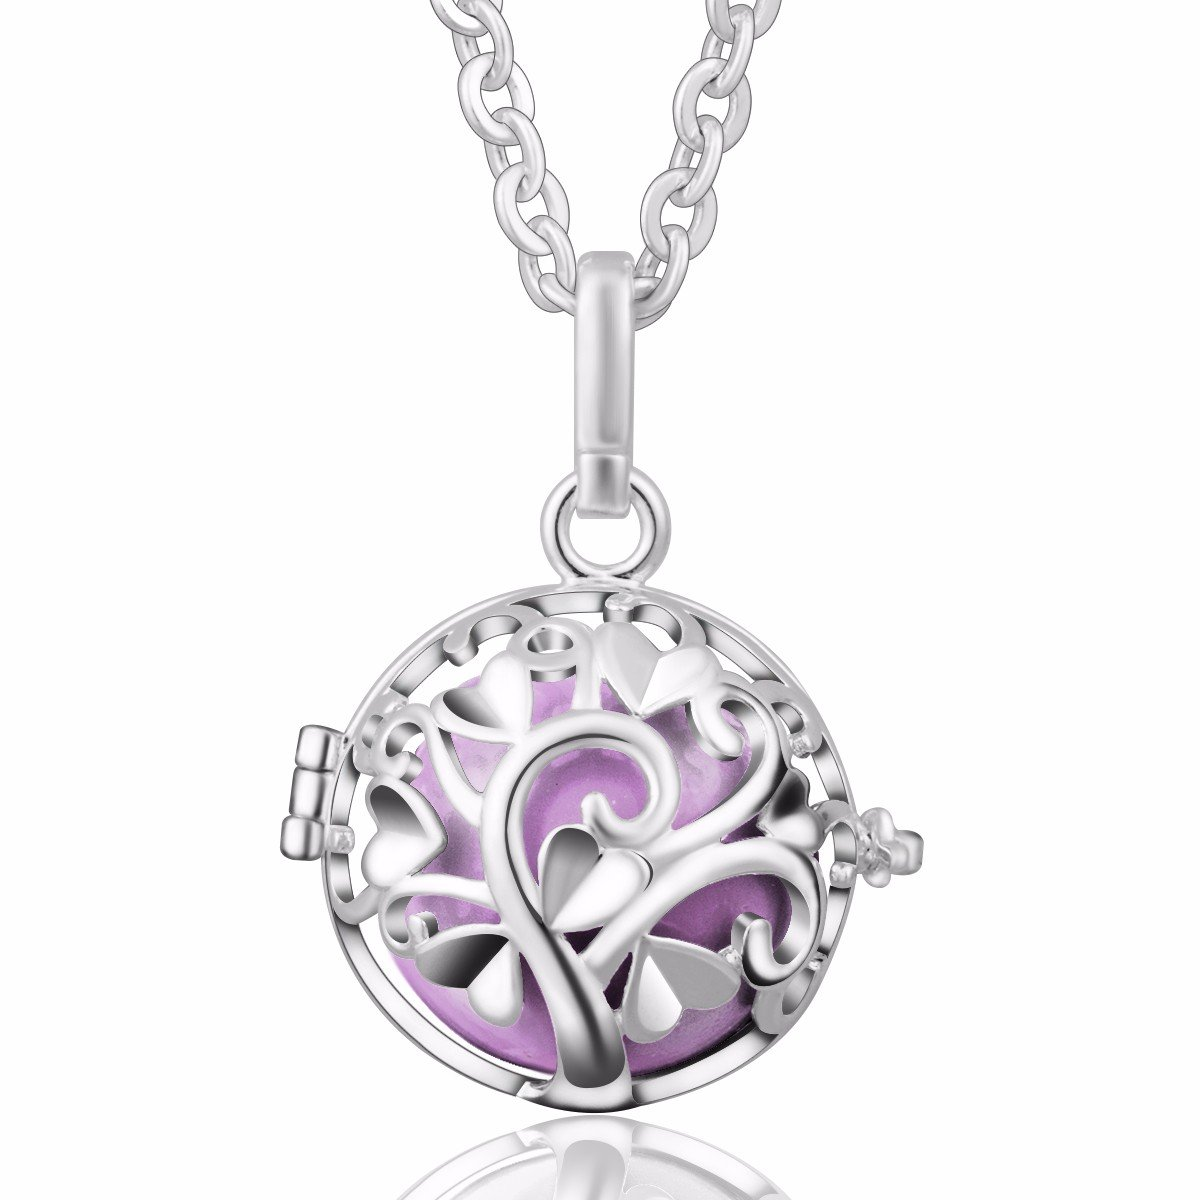 Eudora Harmony Bola Love Tree 20mm Pendant Musical Chime Perfume Necklace 30 Inches Chain,Silver Plated H217A11-NL34-30